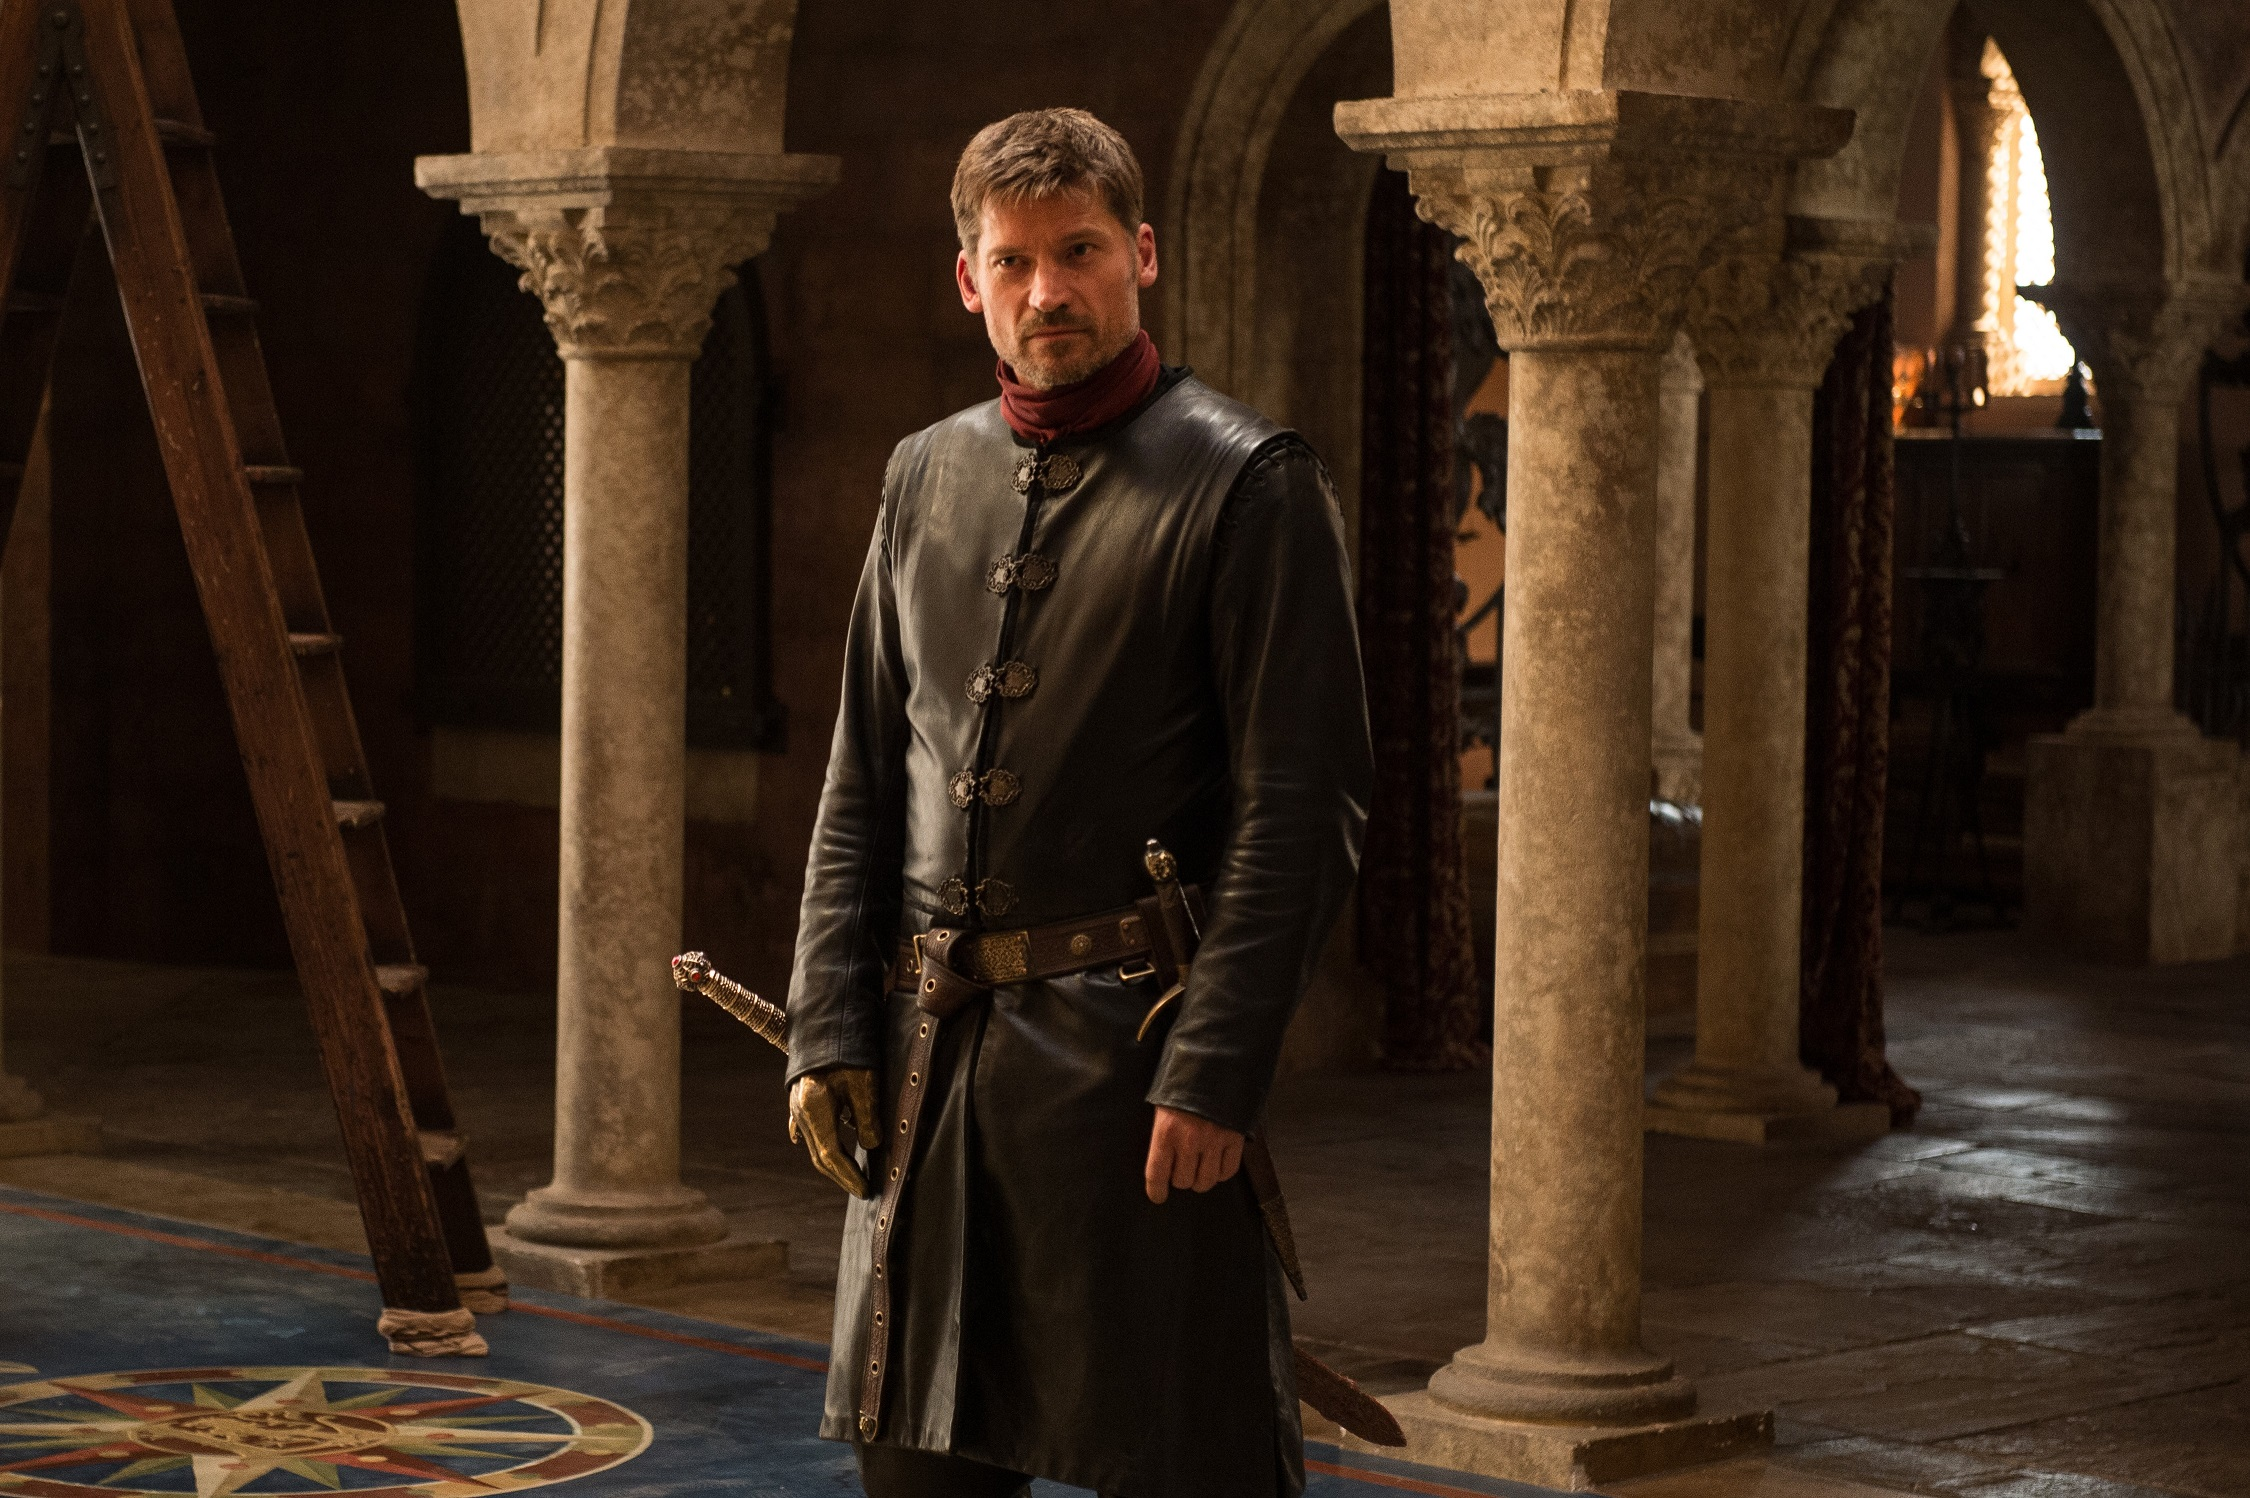 Nikolaj Coster-Waldau said in a recent interview that the 'Game of Thrones' cast will not receive physical copies of the Season 8 script.